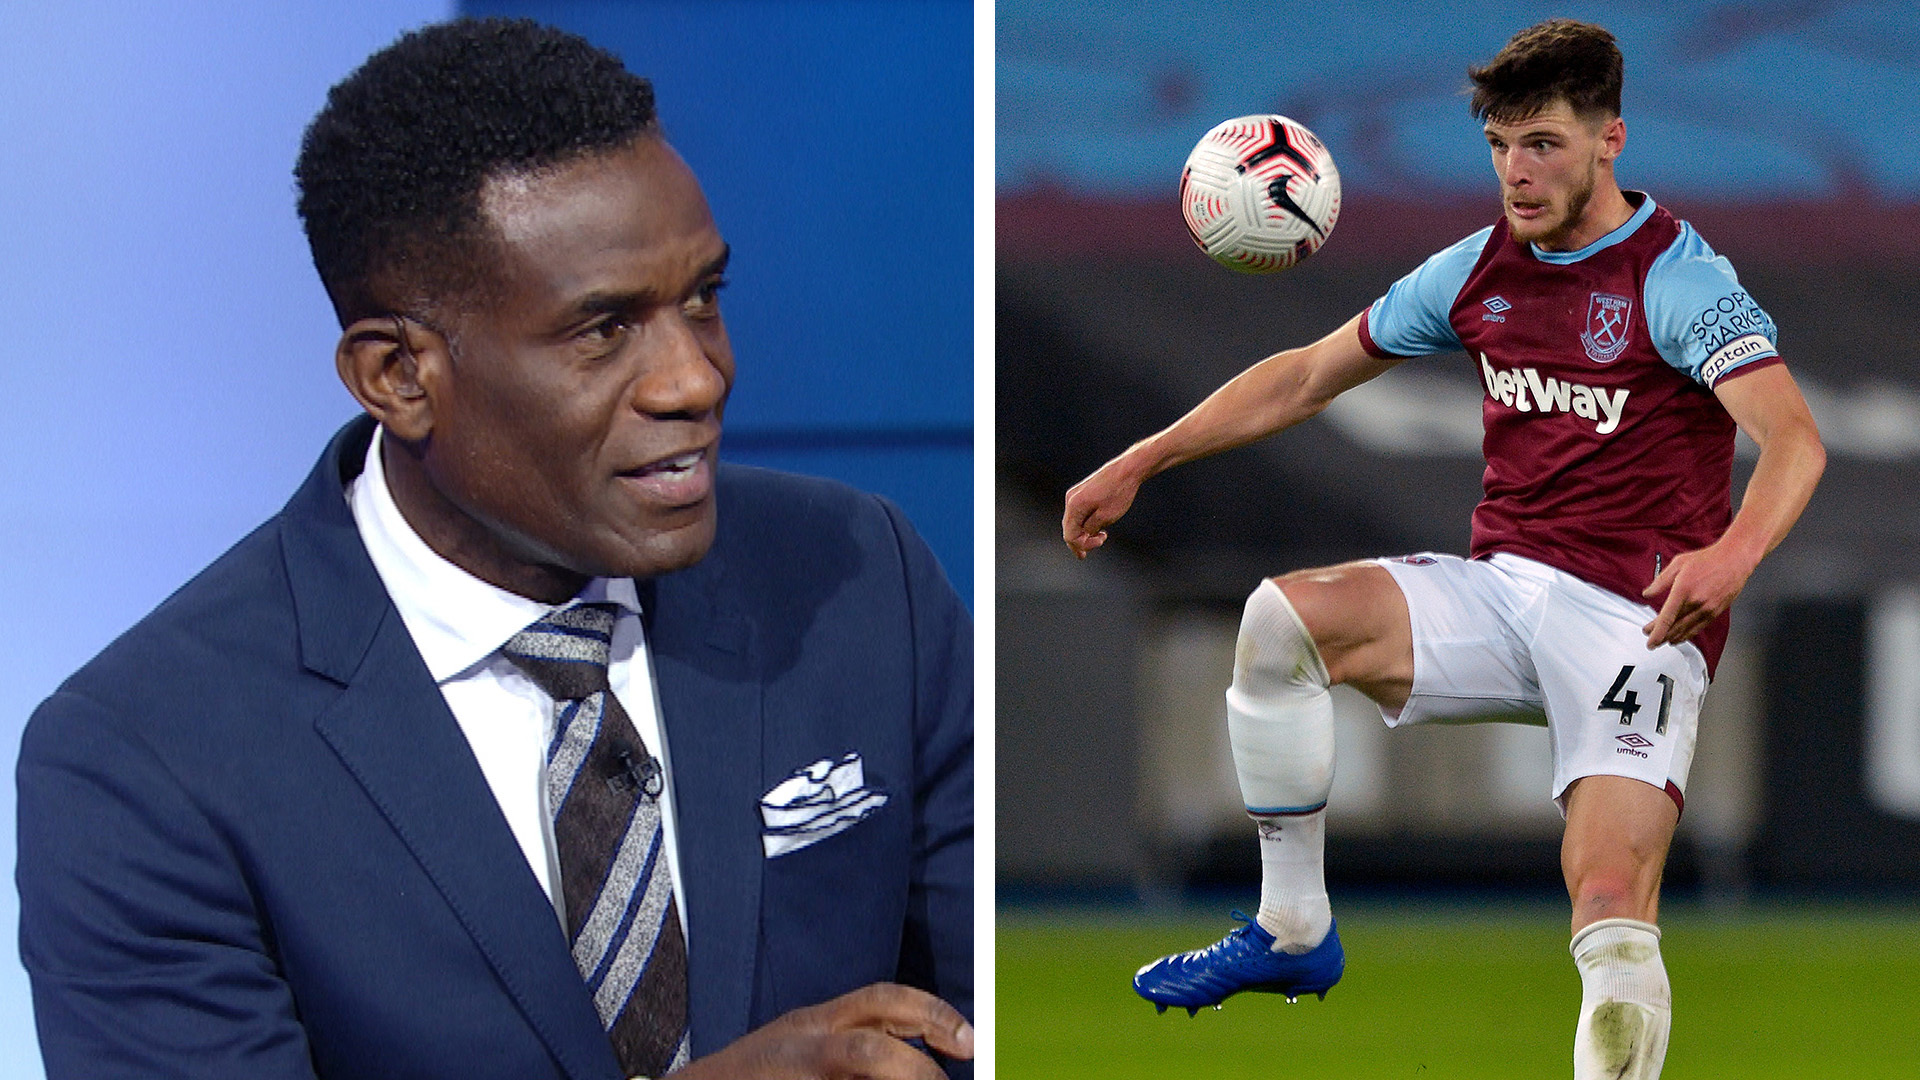 Previewing Premier League summer transfer deadline day 2020